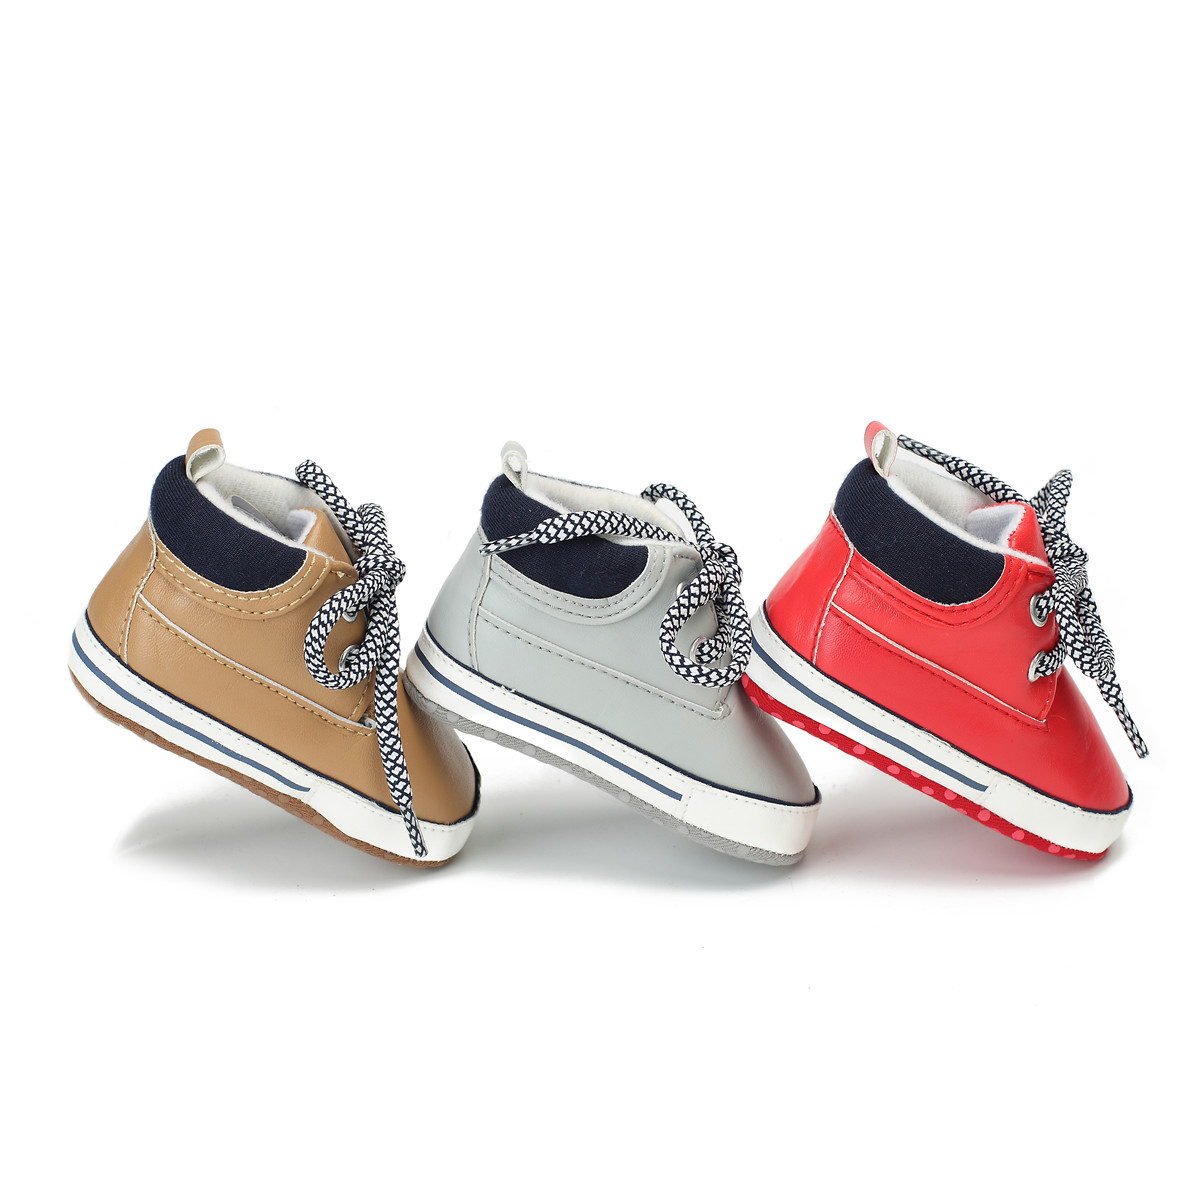 New Arrival 2018 Toddler Baby Shoes PU Leather Boy And Girls Leisure Sport Shoes Spring Autumn Infant Shoes First Walkers